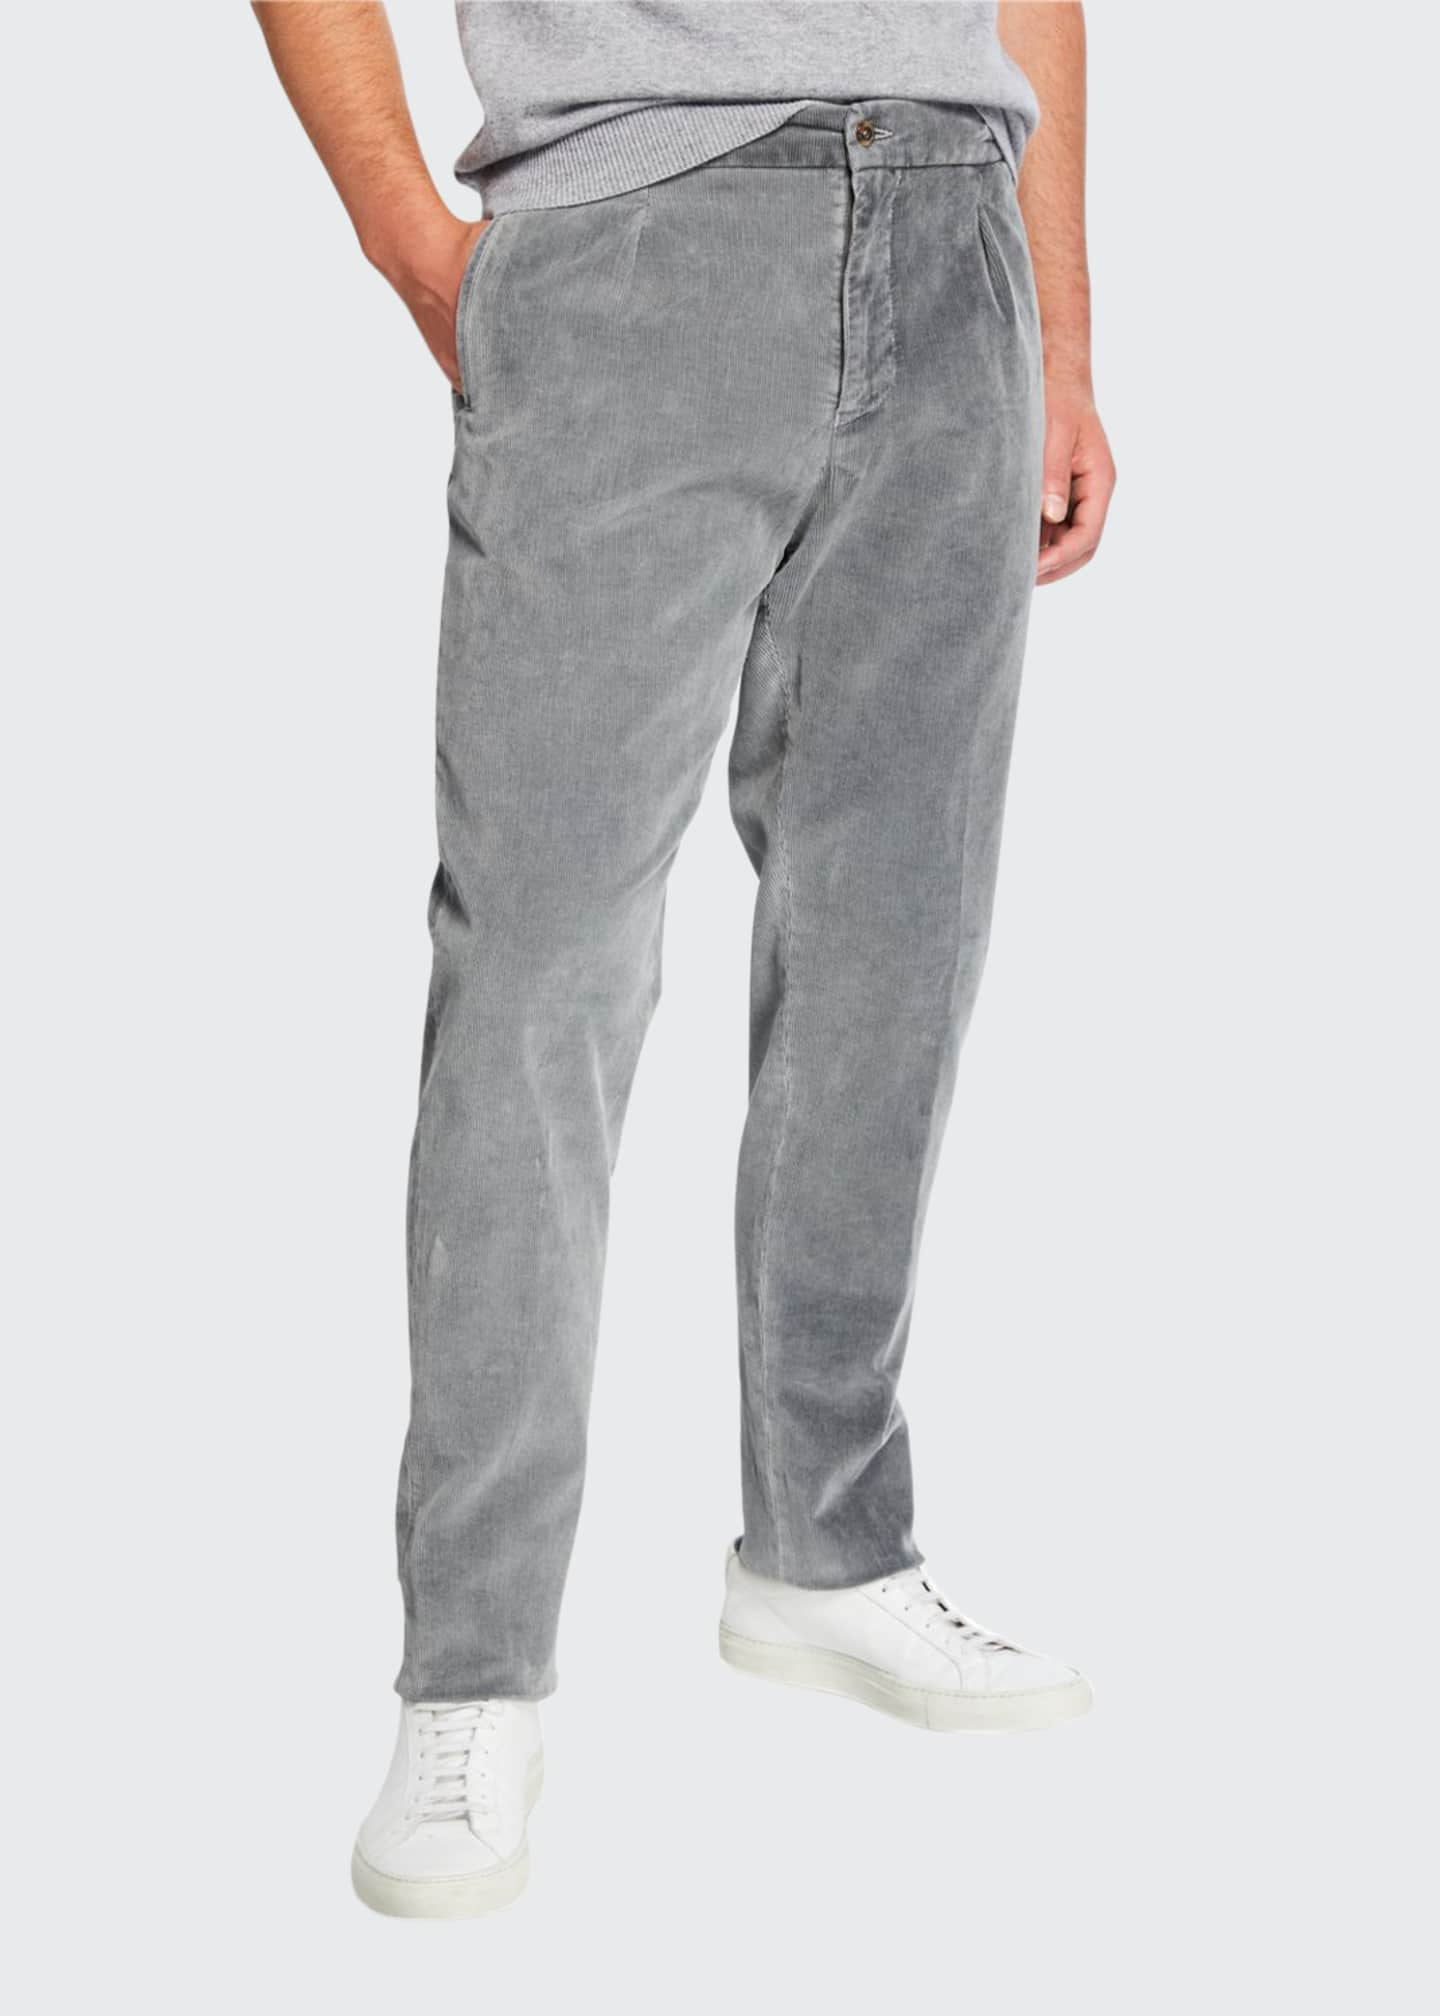 Image 1 of 3: Men's Pleated Corduroy Trousers with Elastic Waist, Gray